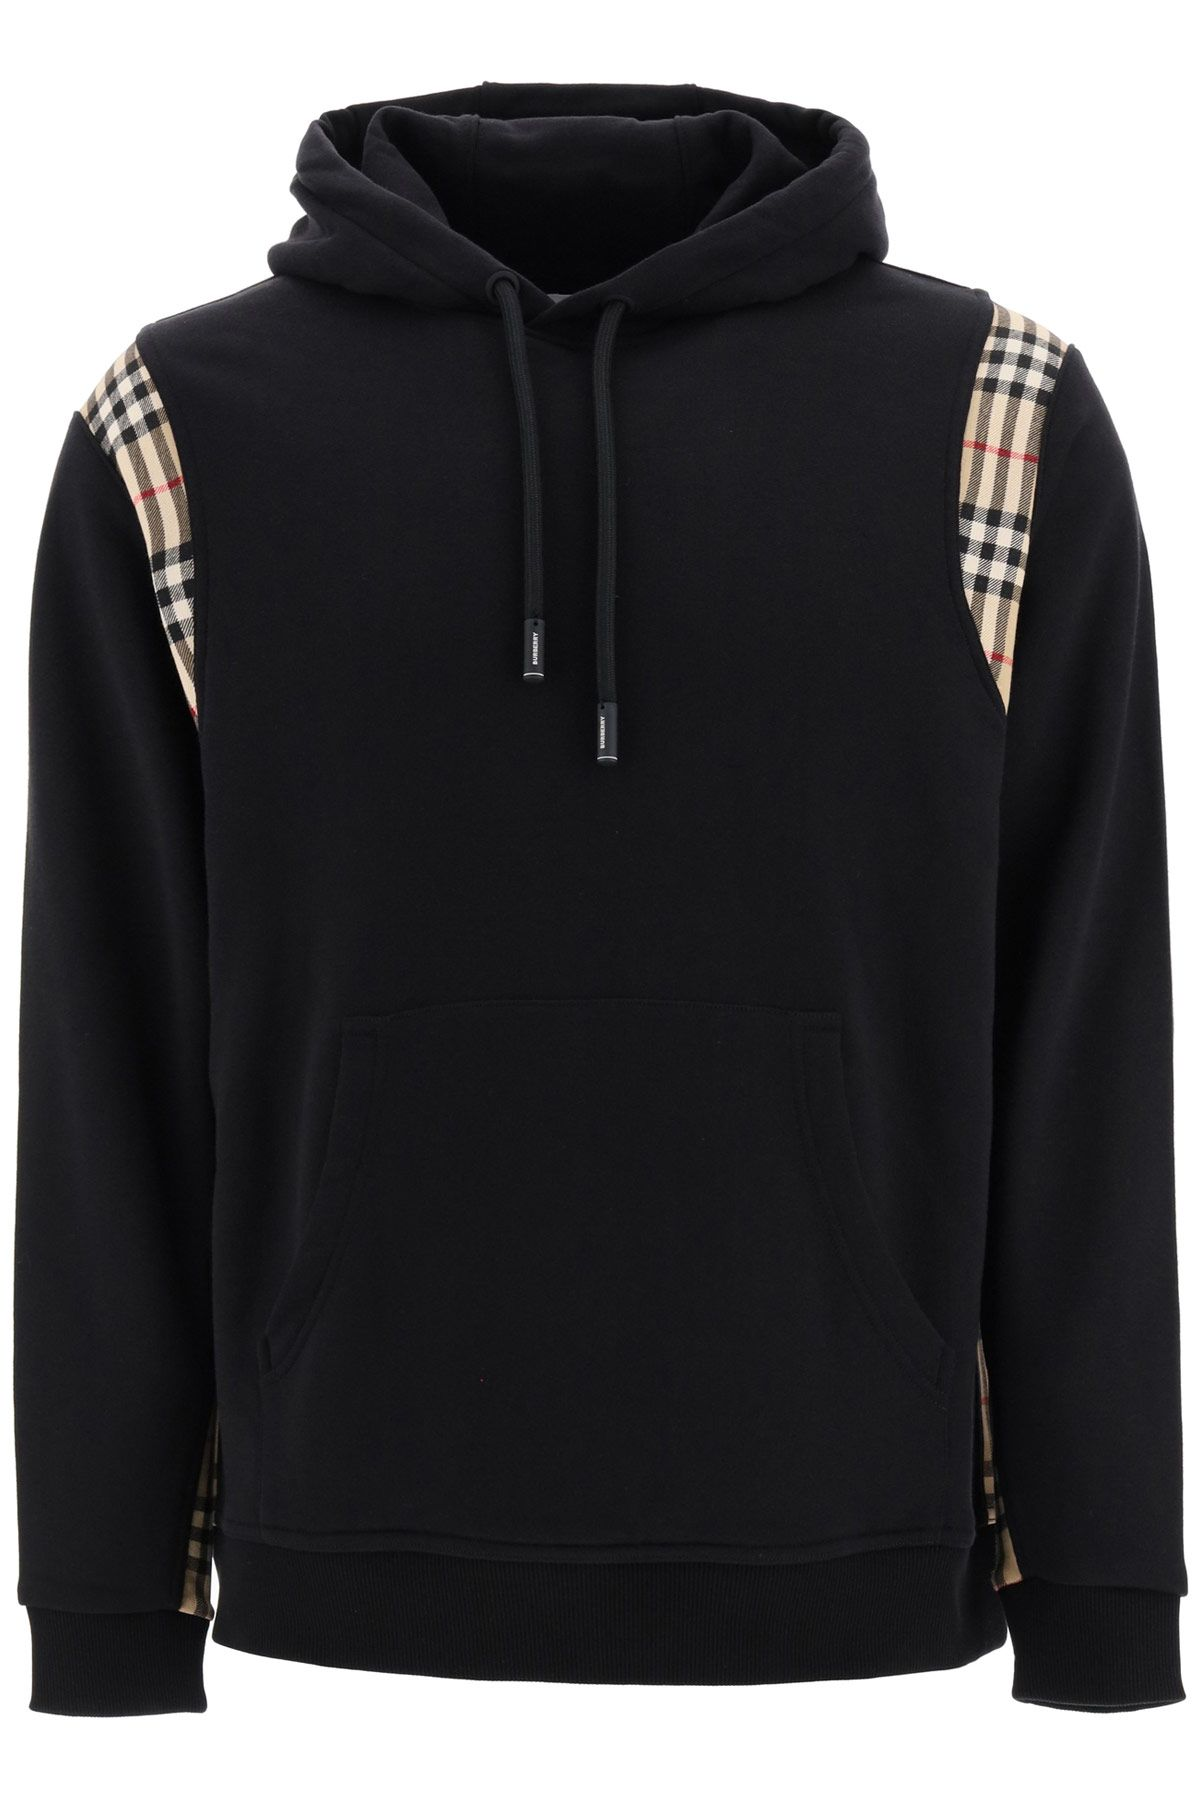 burberry clothing men hoodie with check inserts